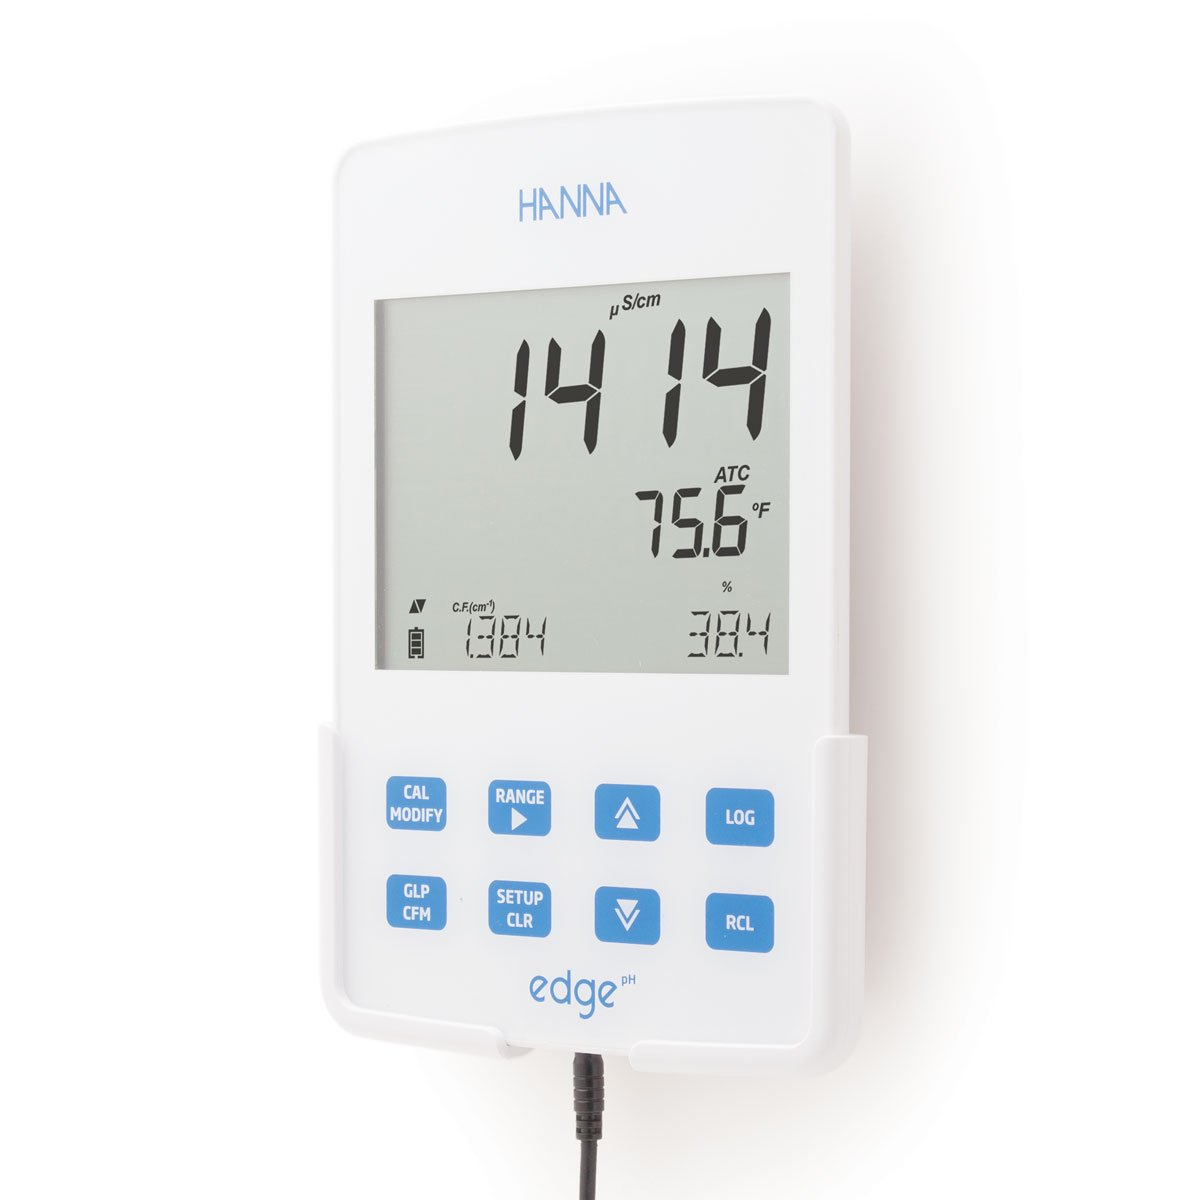 Edge Meter with Wall Mount - HI2003